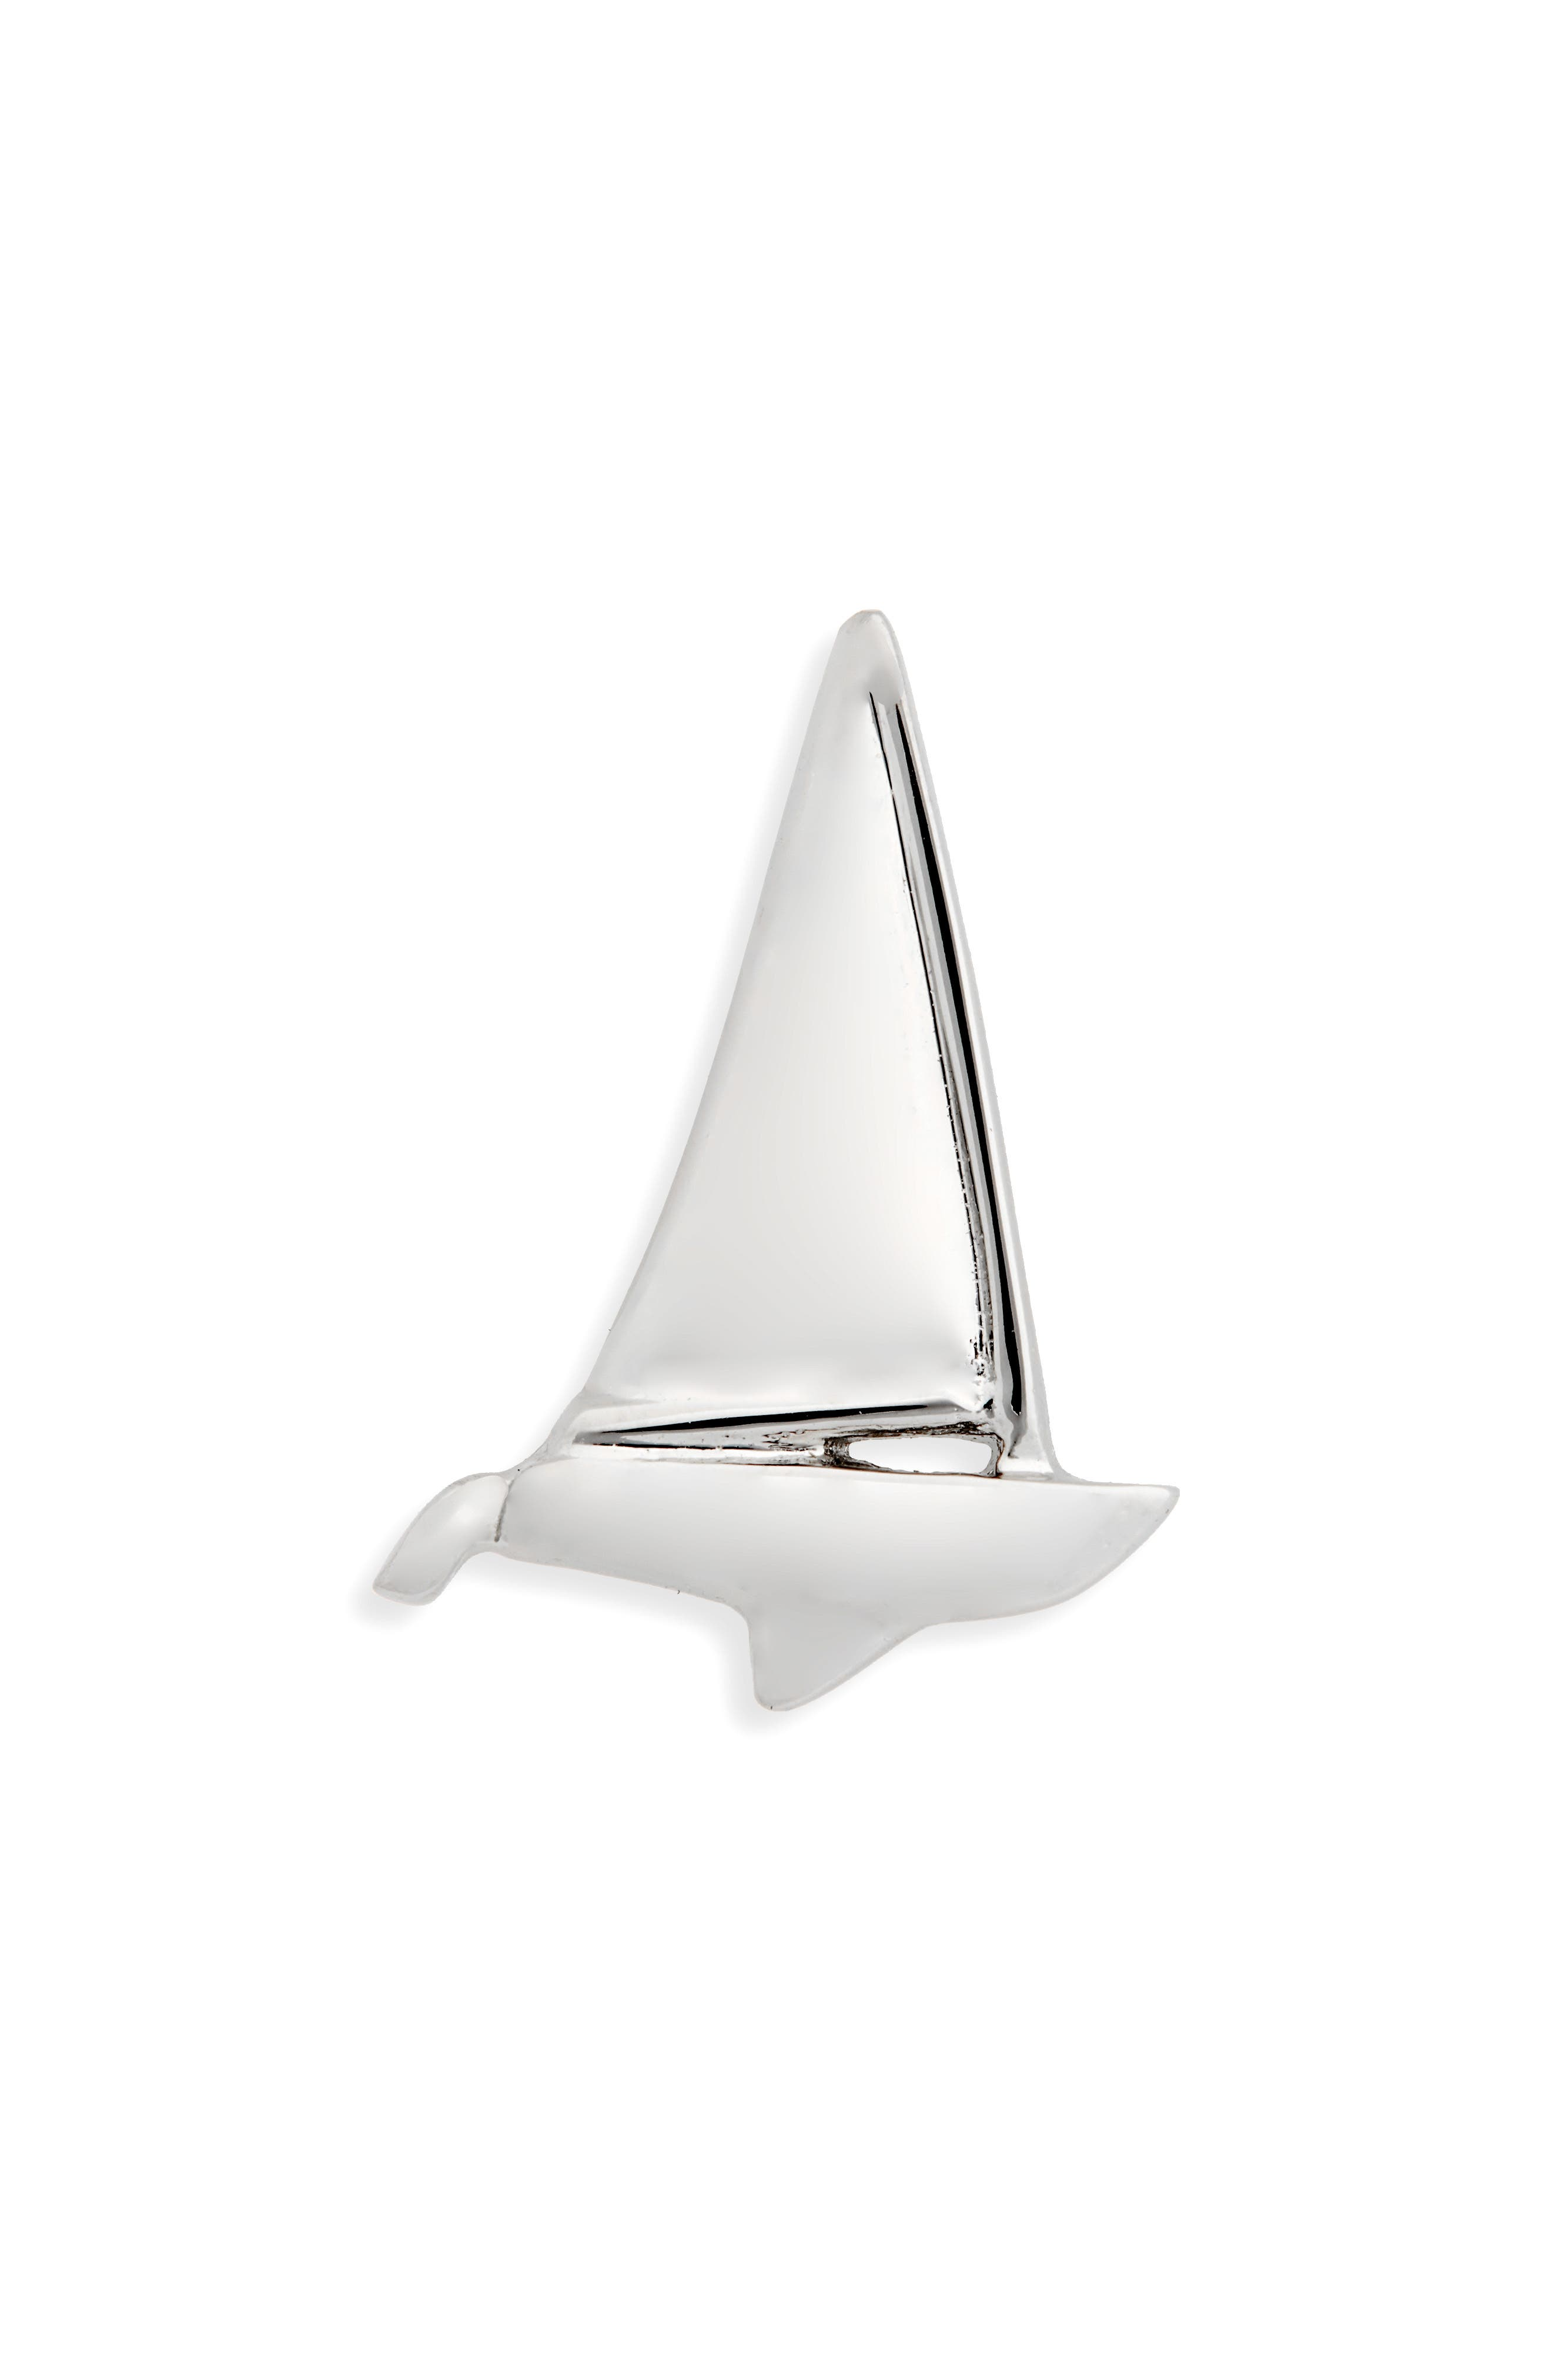 Sailboat Lapel Pin,                             Main thumbnail 1, color,                             Silver